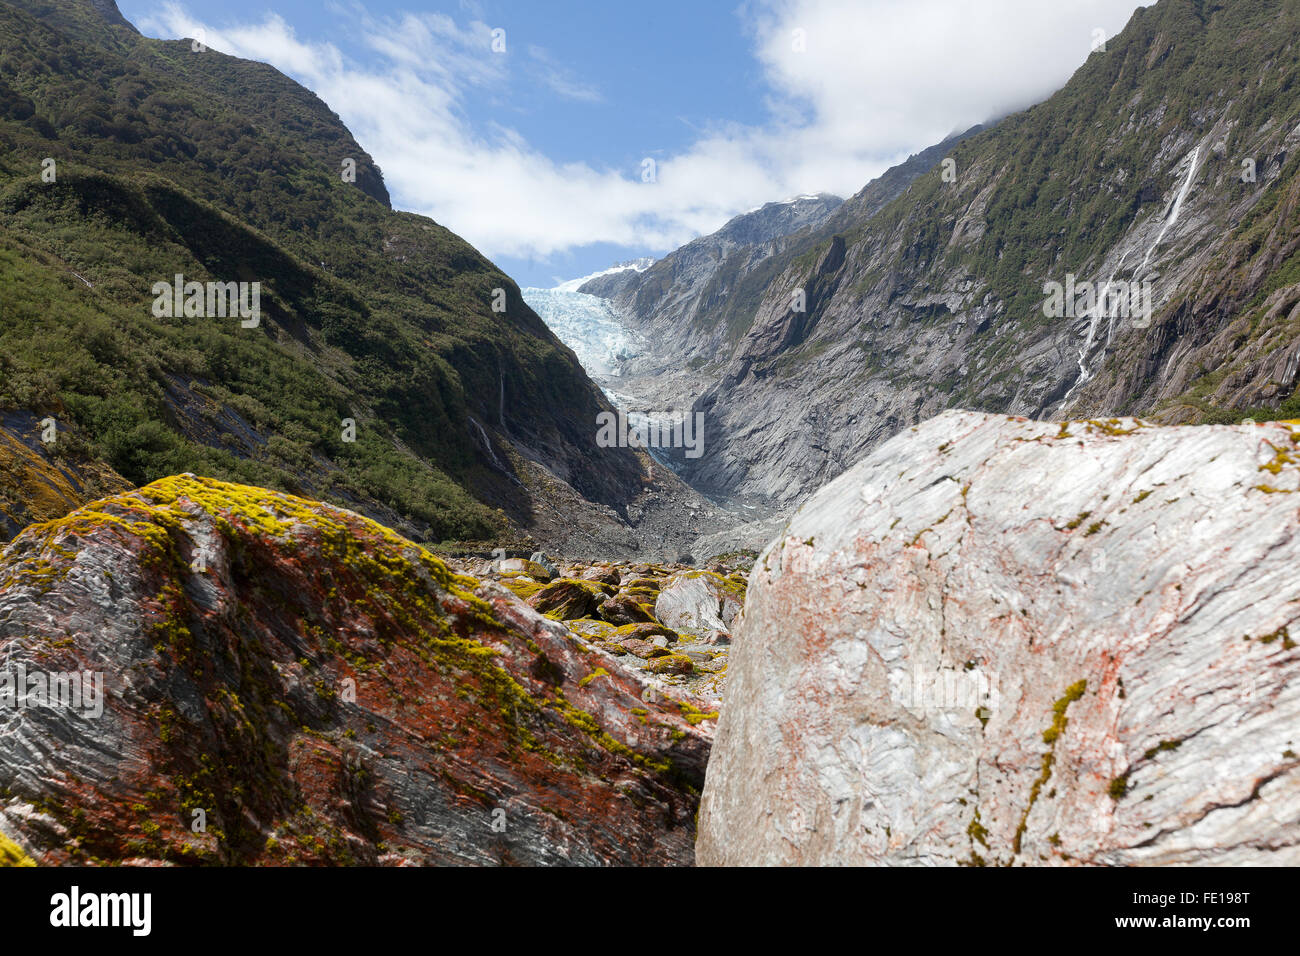 Franz Joseph Glacier, New Zealand - Stock Image